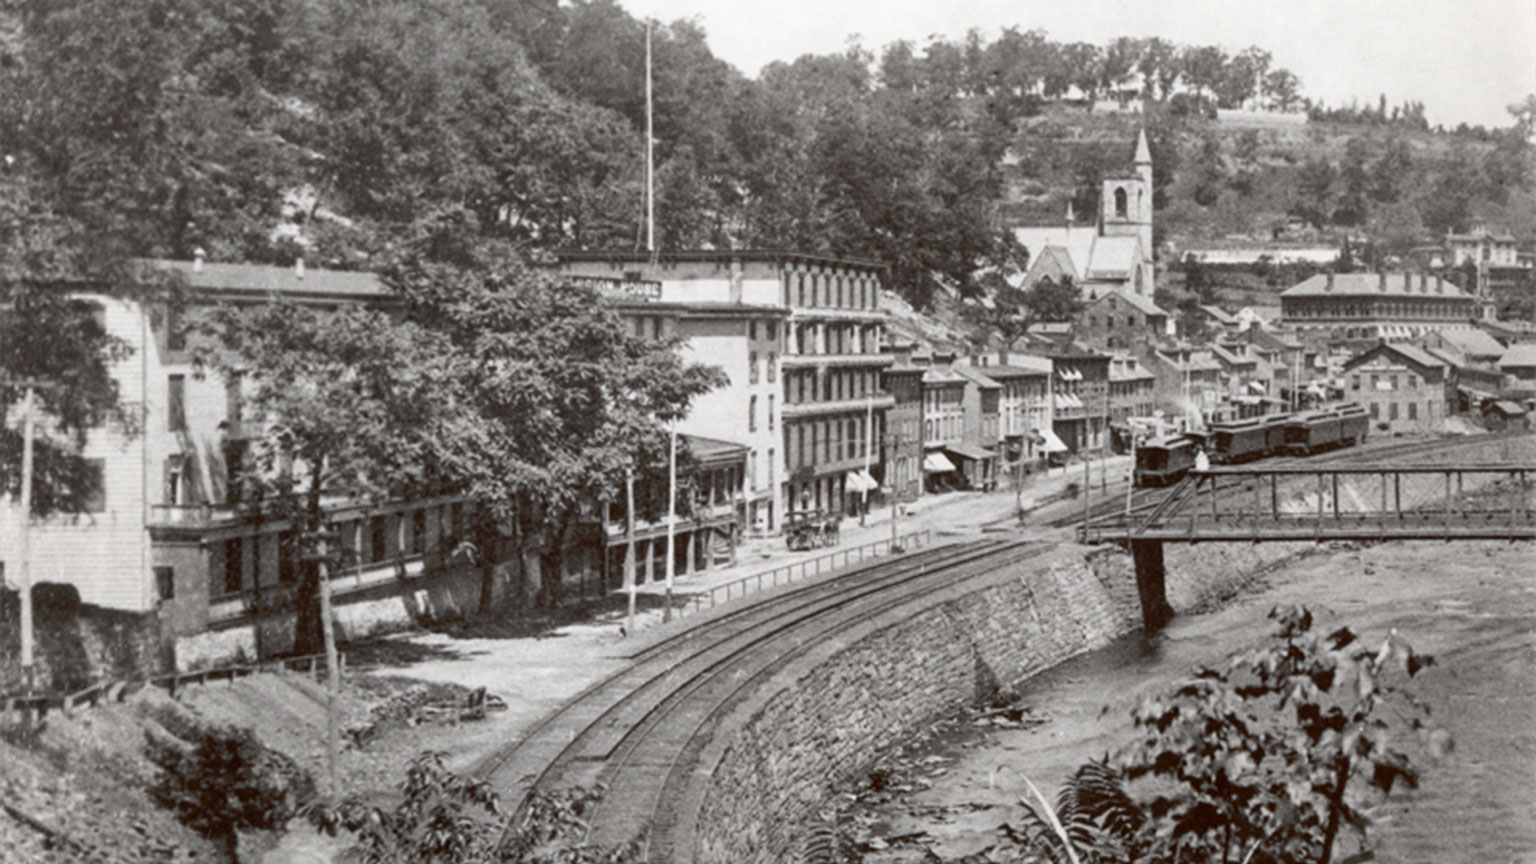 Mauch Chunk along river 1880s.